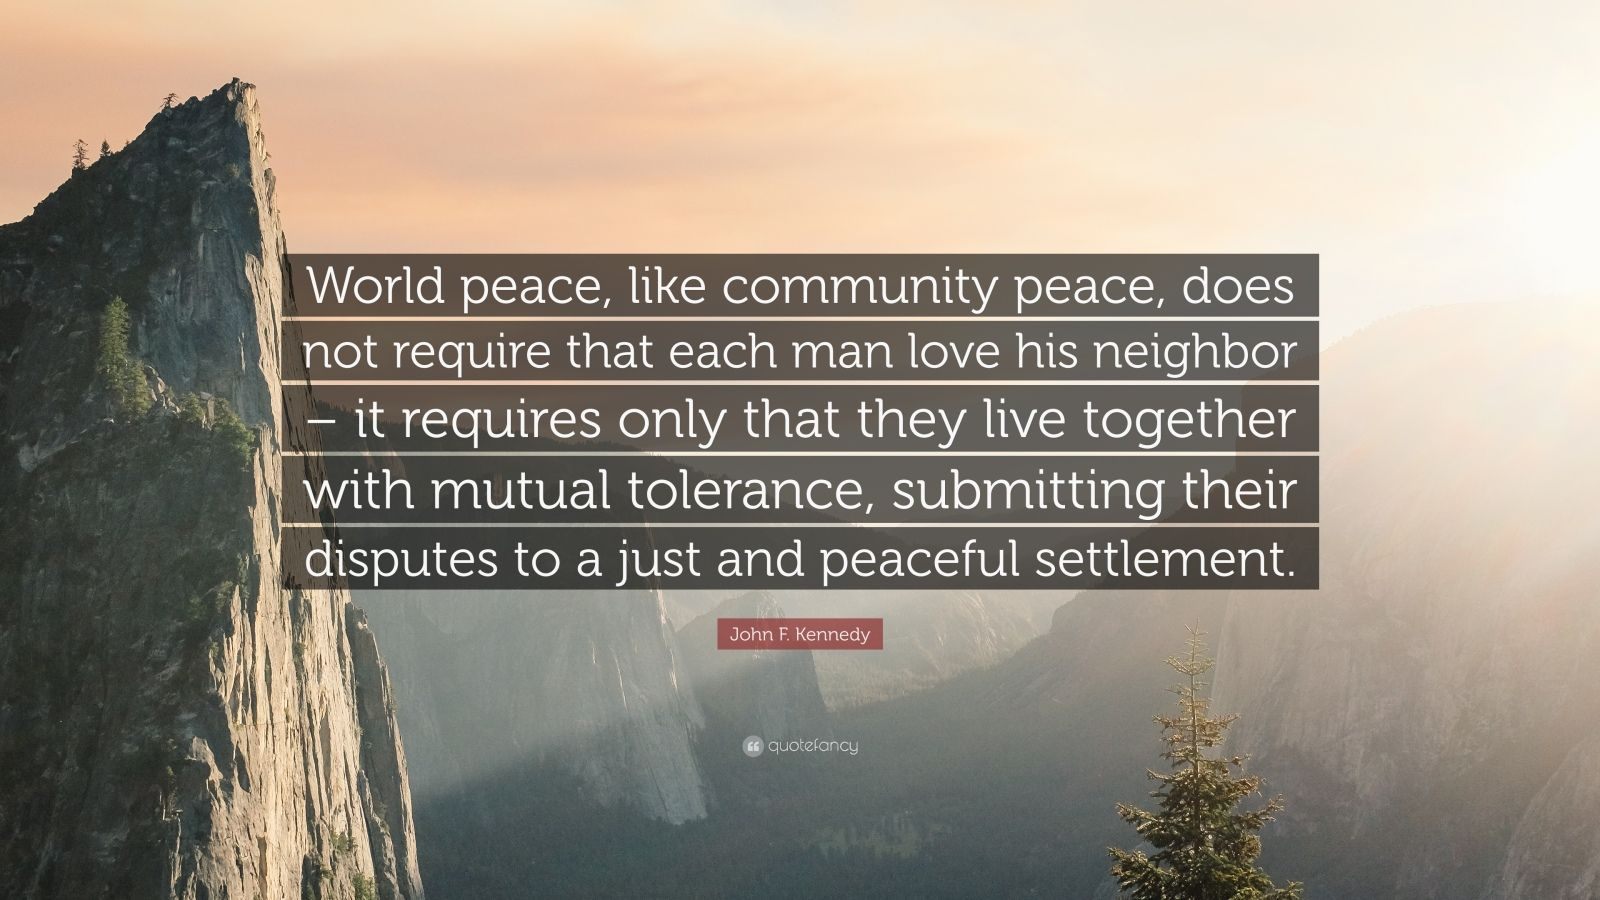 """John F. Kennedy Quote: """"World peace, like community peace, does not require that each man love his neighbor – it requires only that they live together with mutual tolerance, submitting their disputes to a just and peaceful settlement."""""""